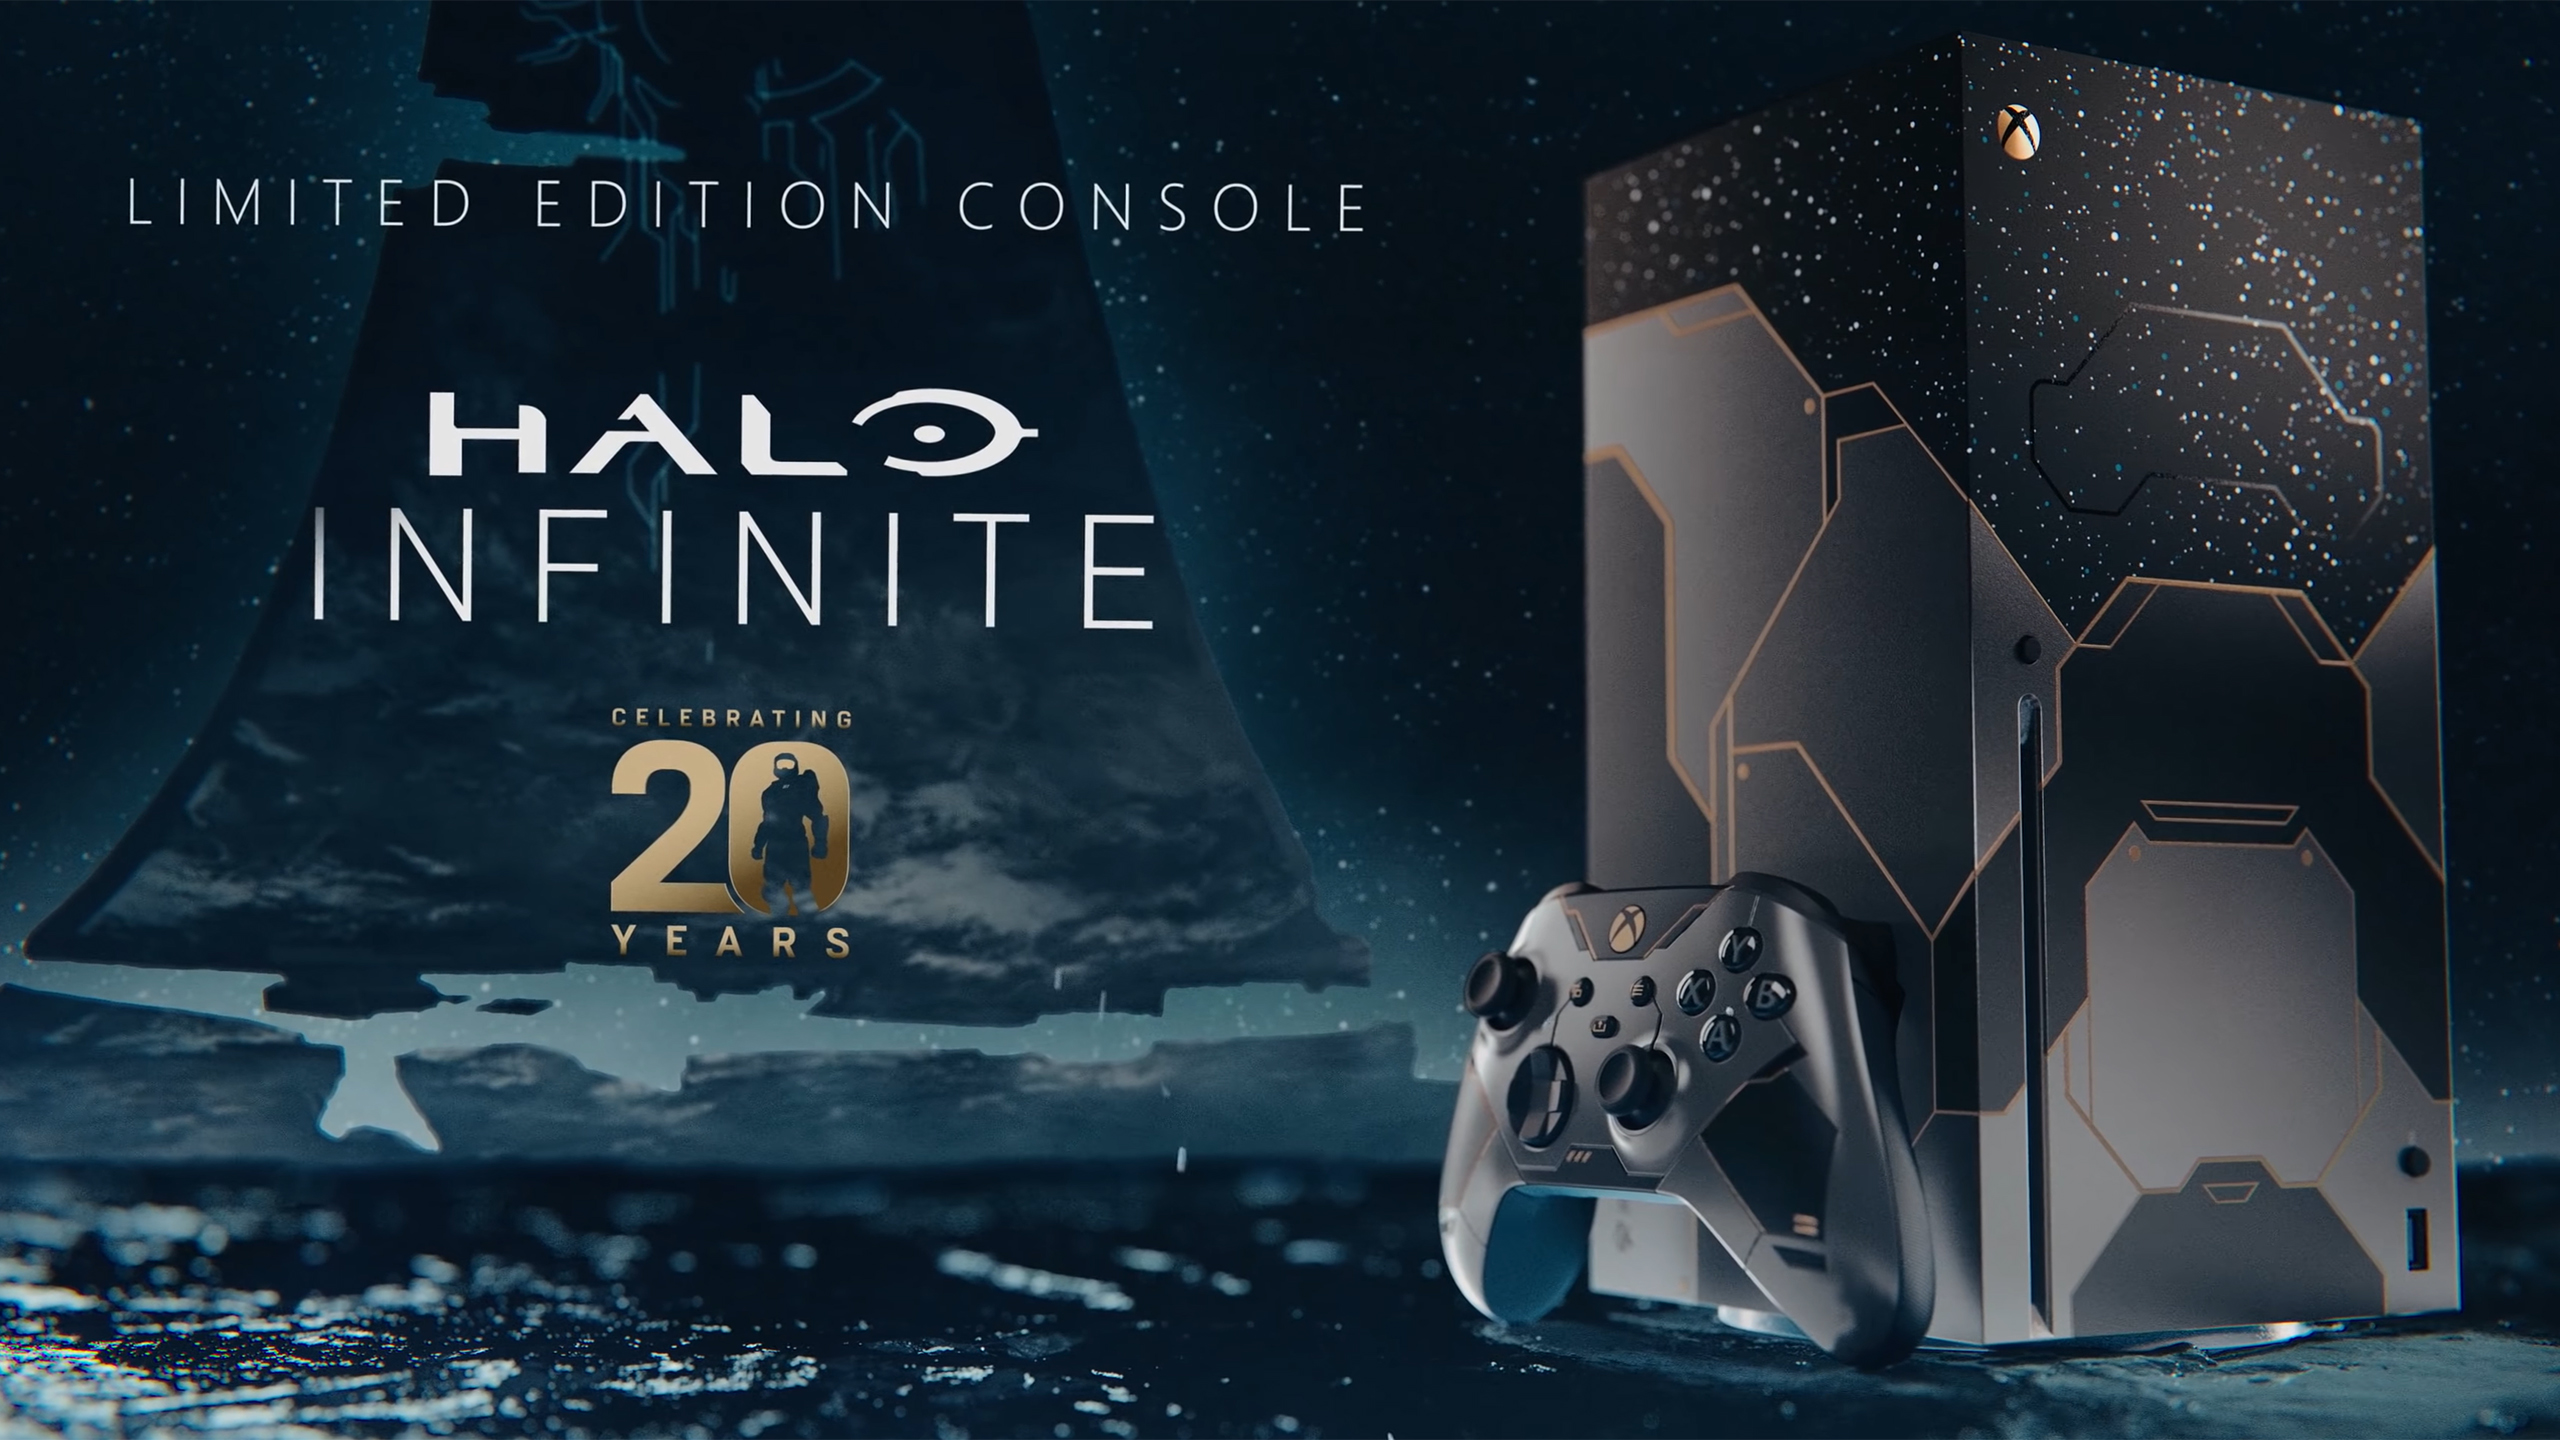 Halo Infinite Release Date, Special Edition Xbox Console & Controller Announced - The Dad